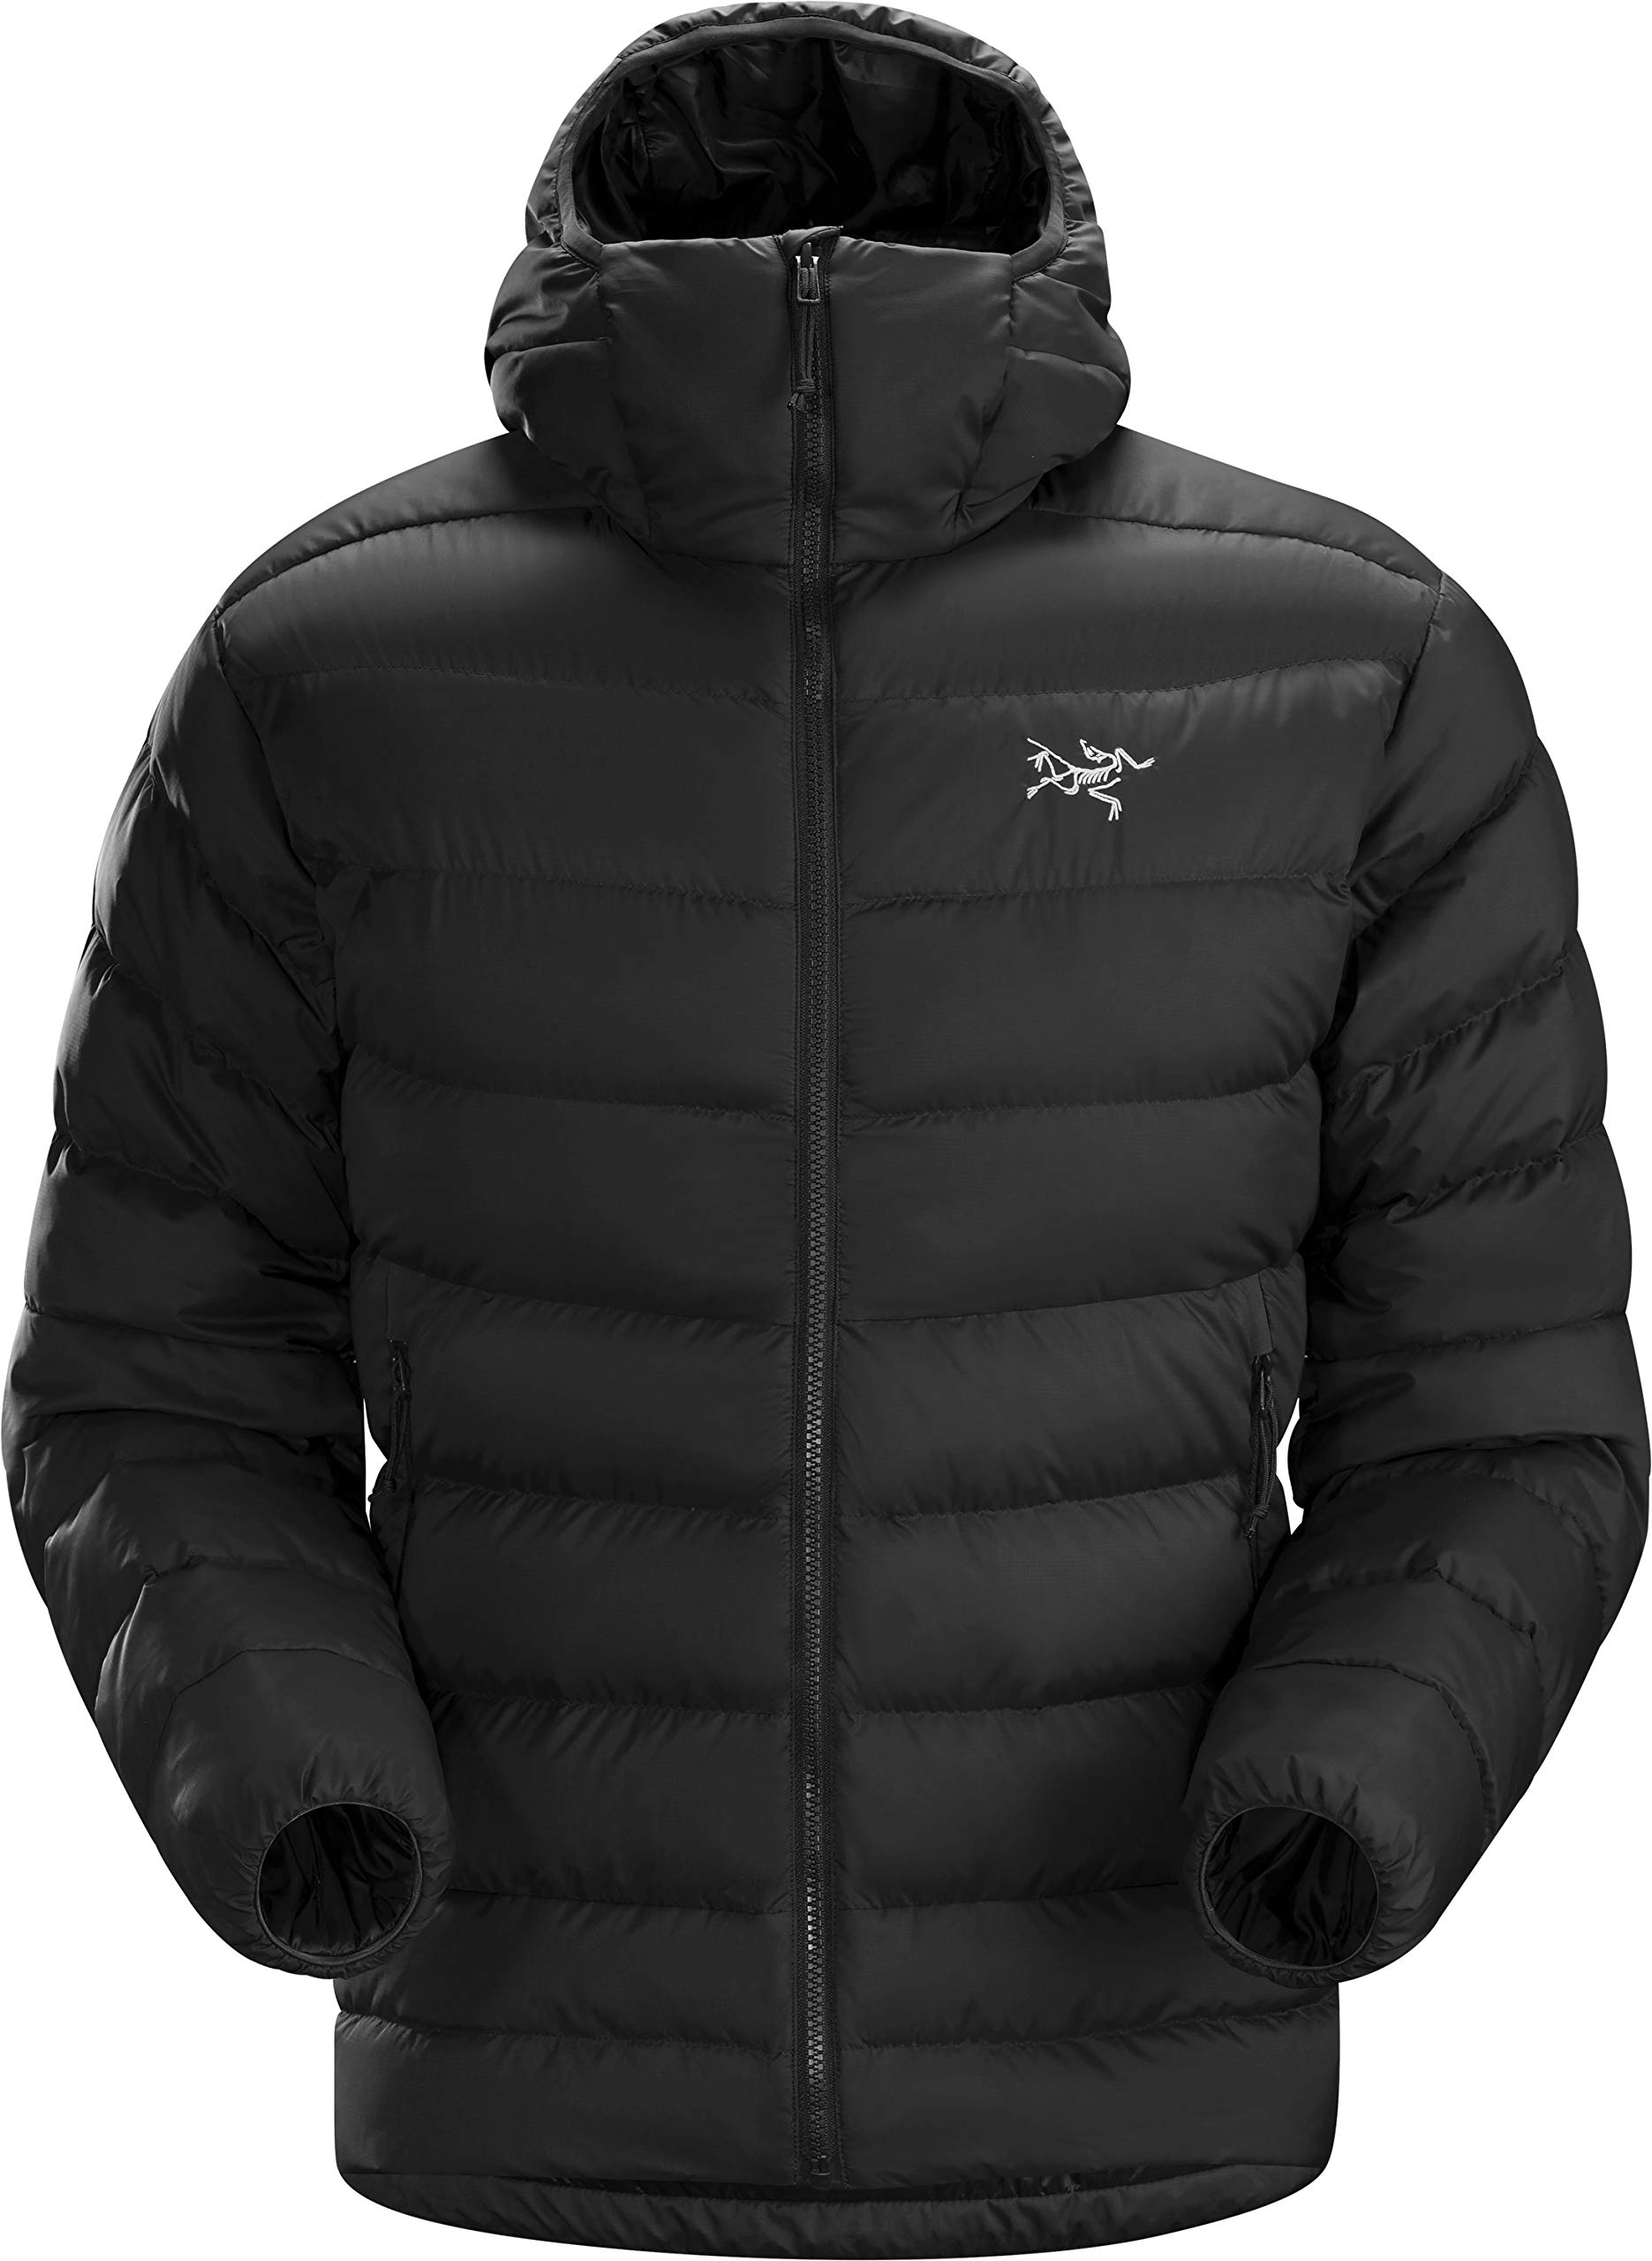 Arc'teryx Thorium AR Hoody Men's (Black, Medium) by Arc'teryx